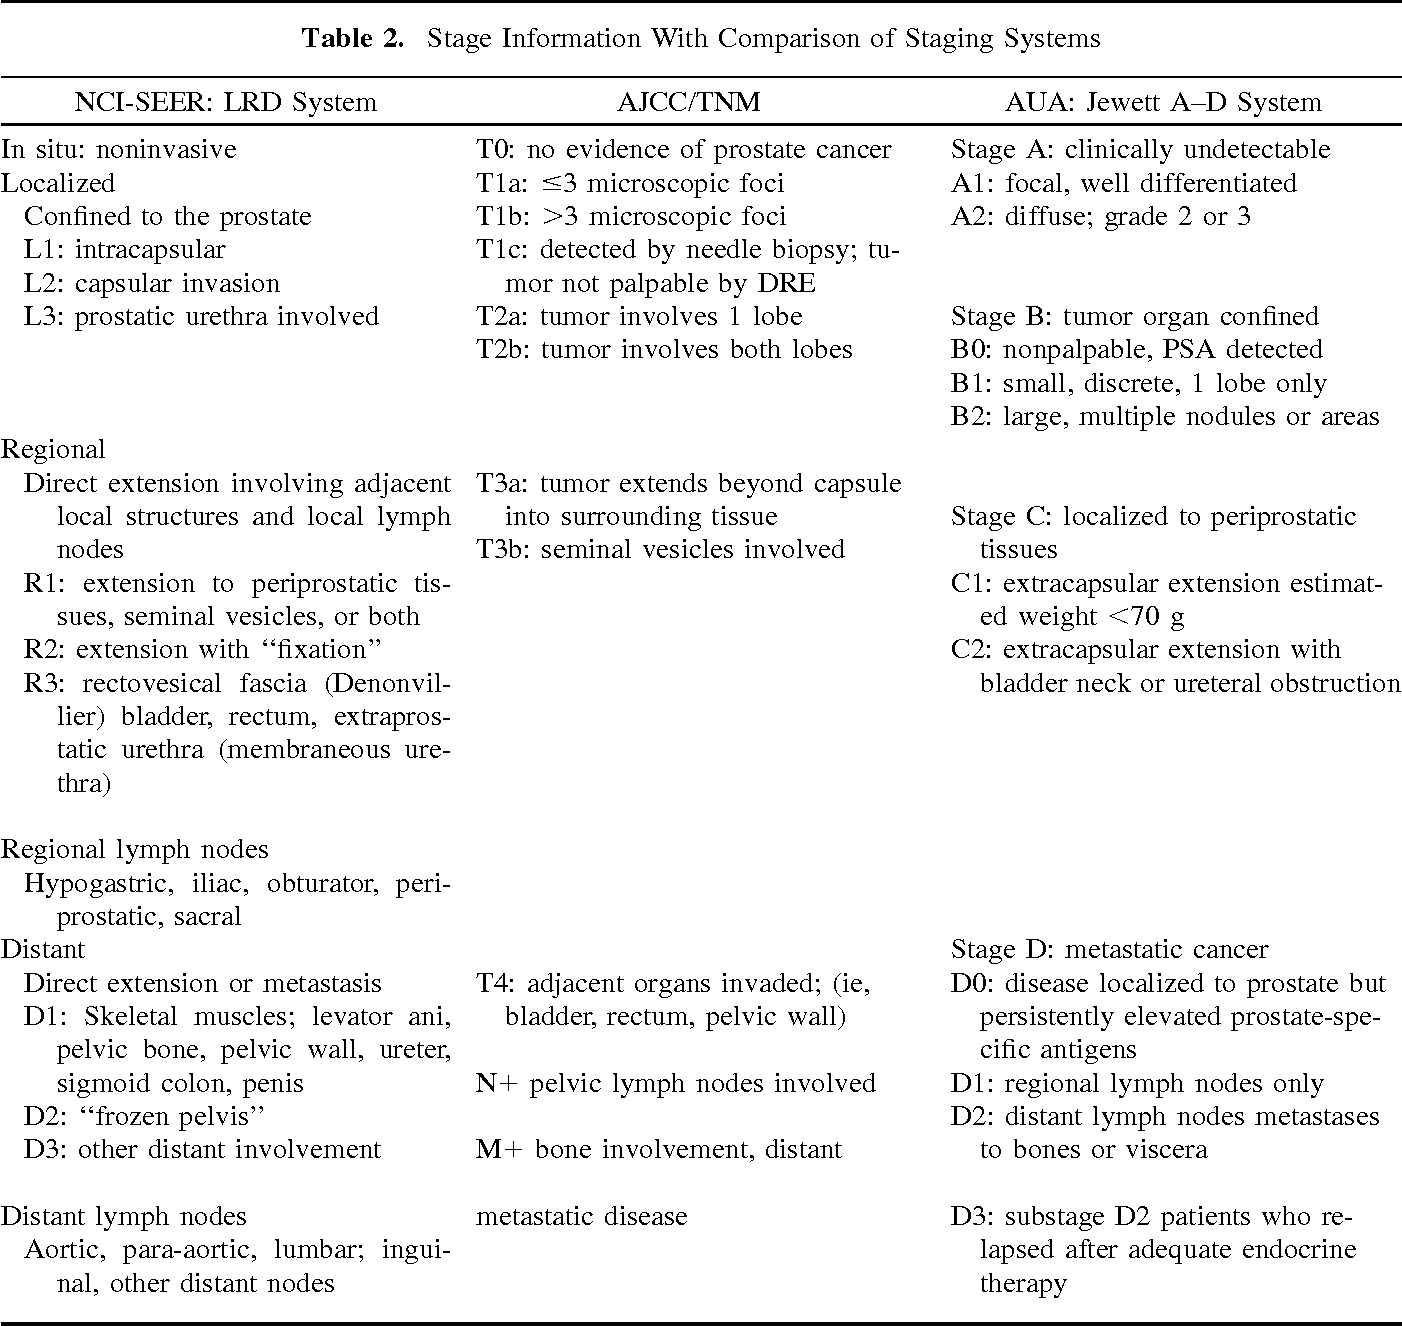 Table 2 from Prostate cancer and life insurance  - Semantic